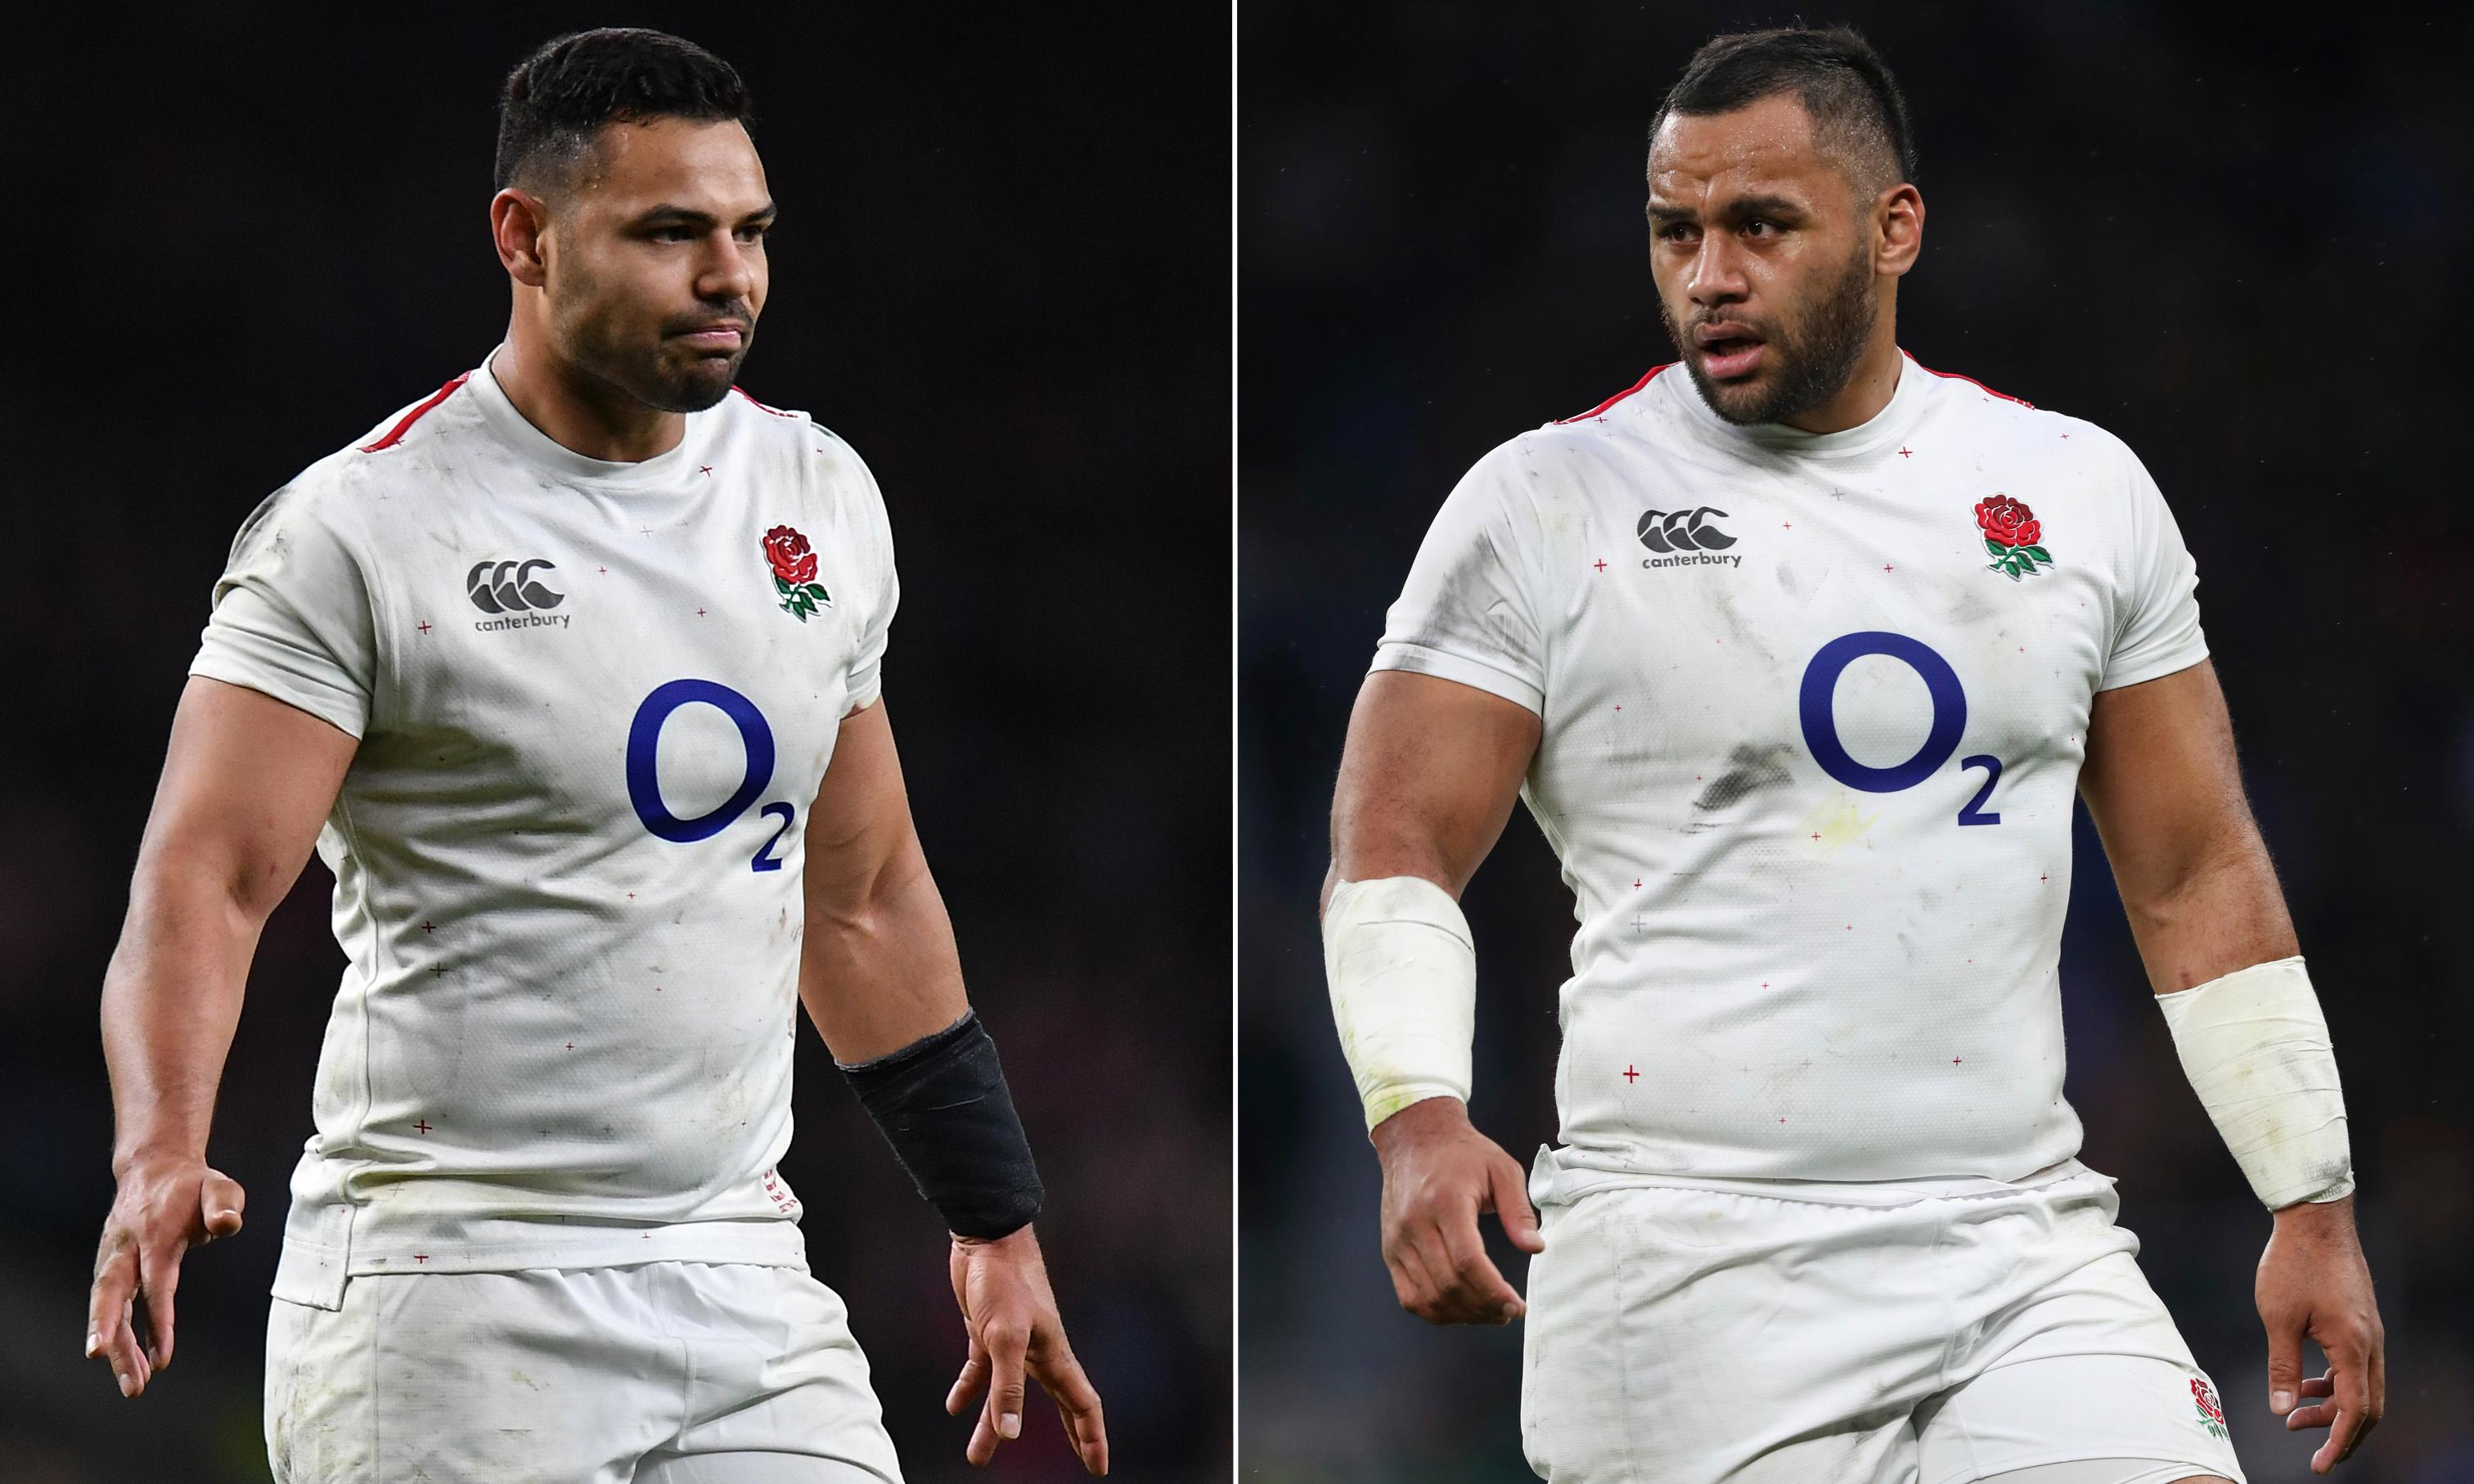 Ben Te'o and Billy Vunipola return late to England hotel after night out